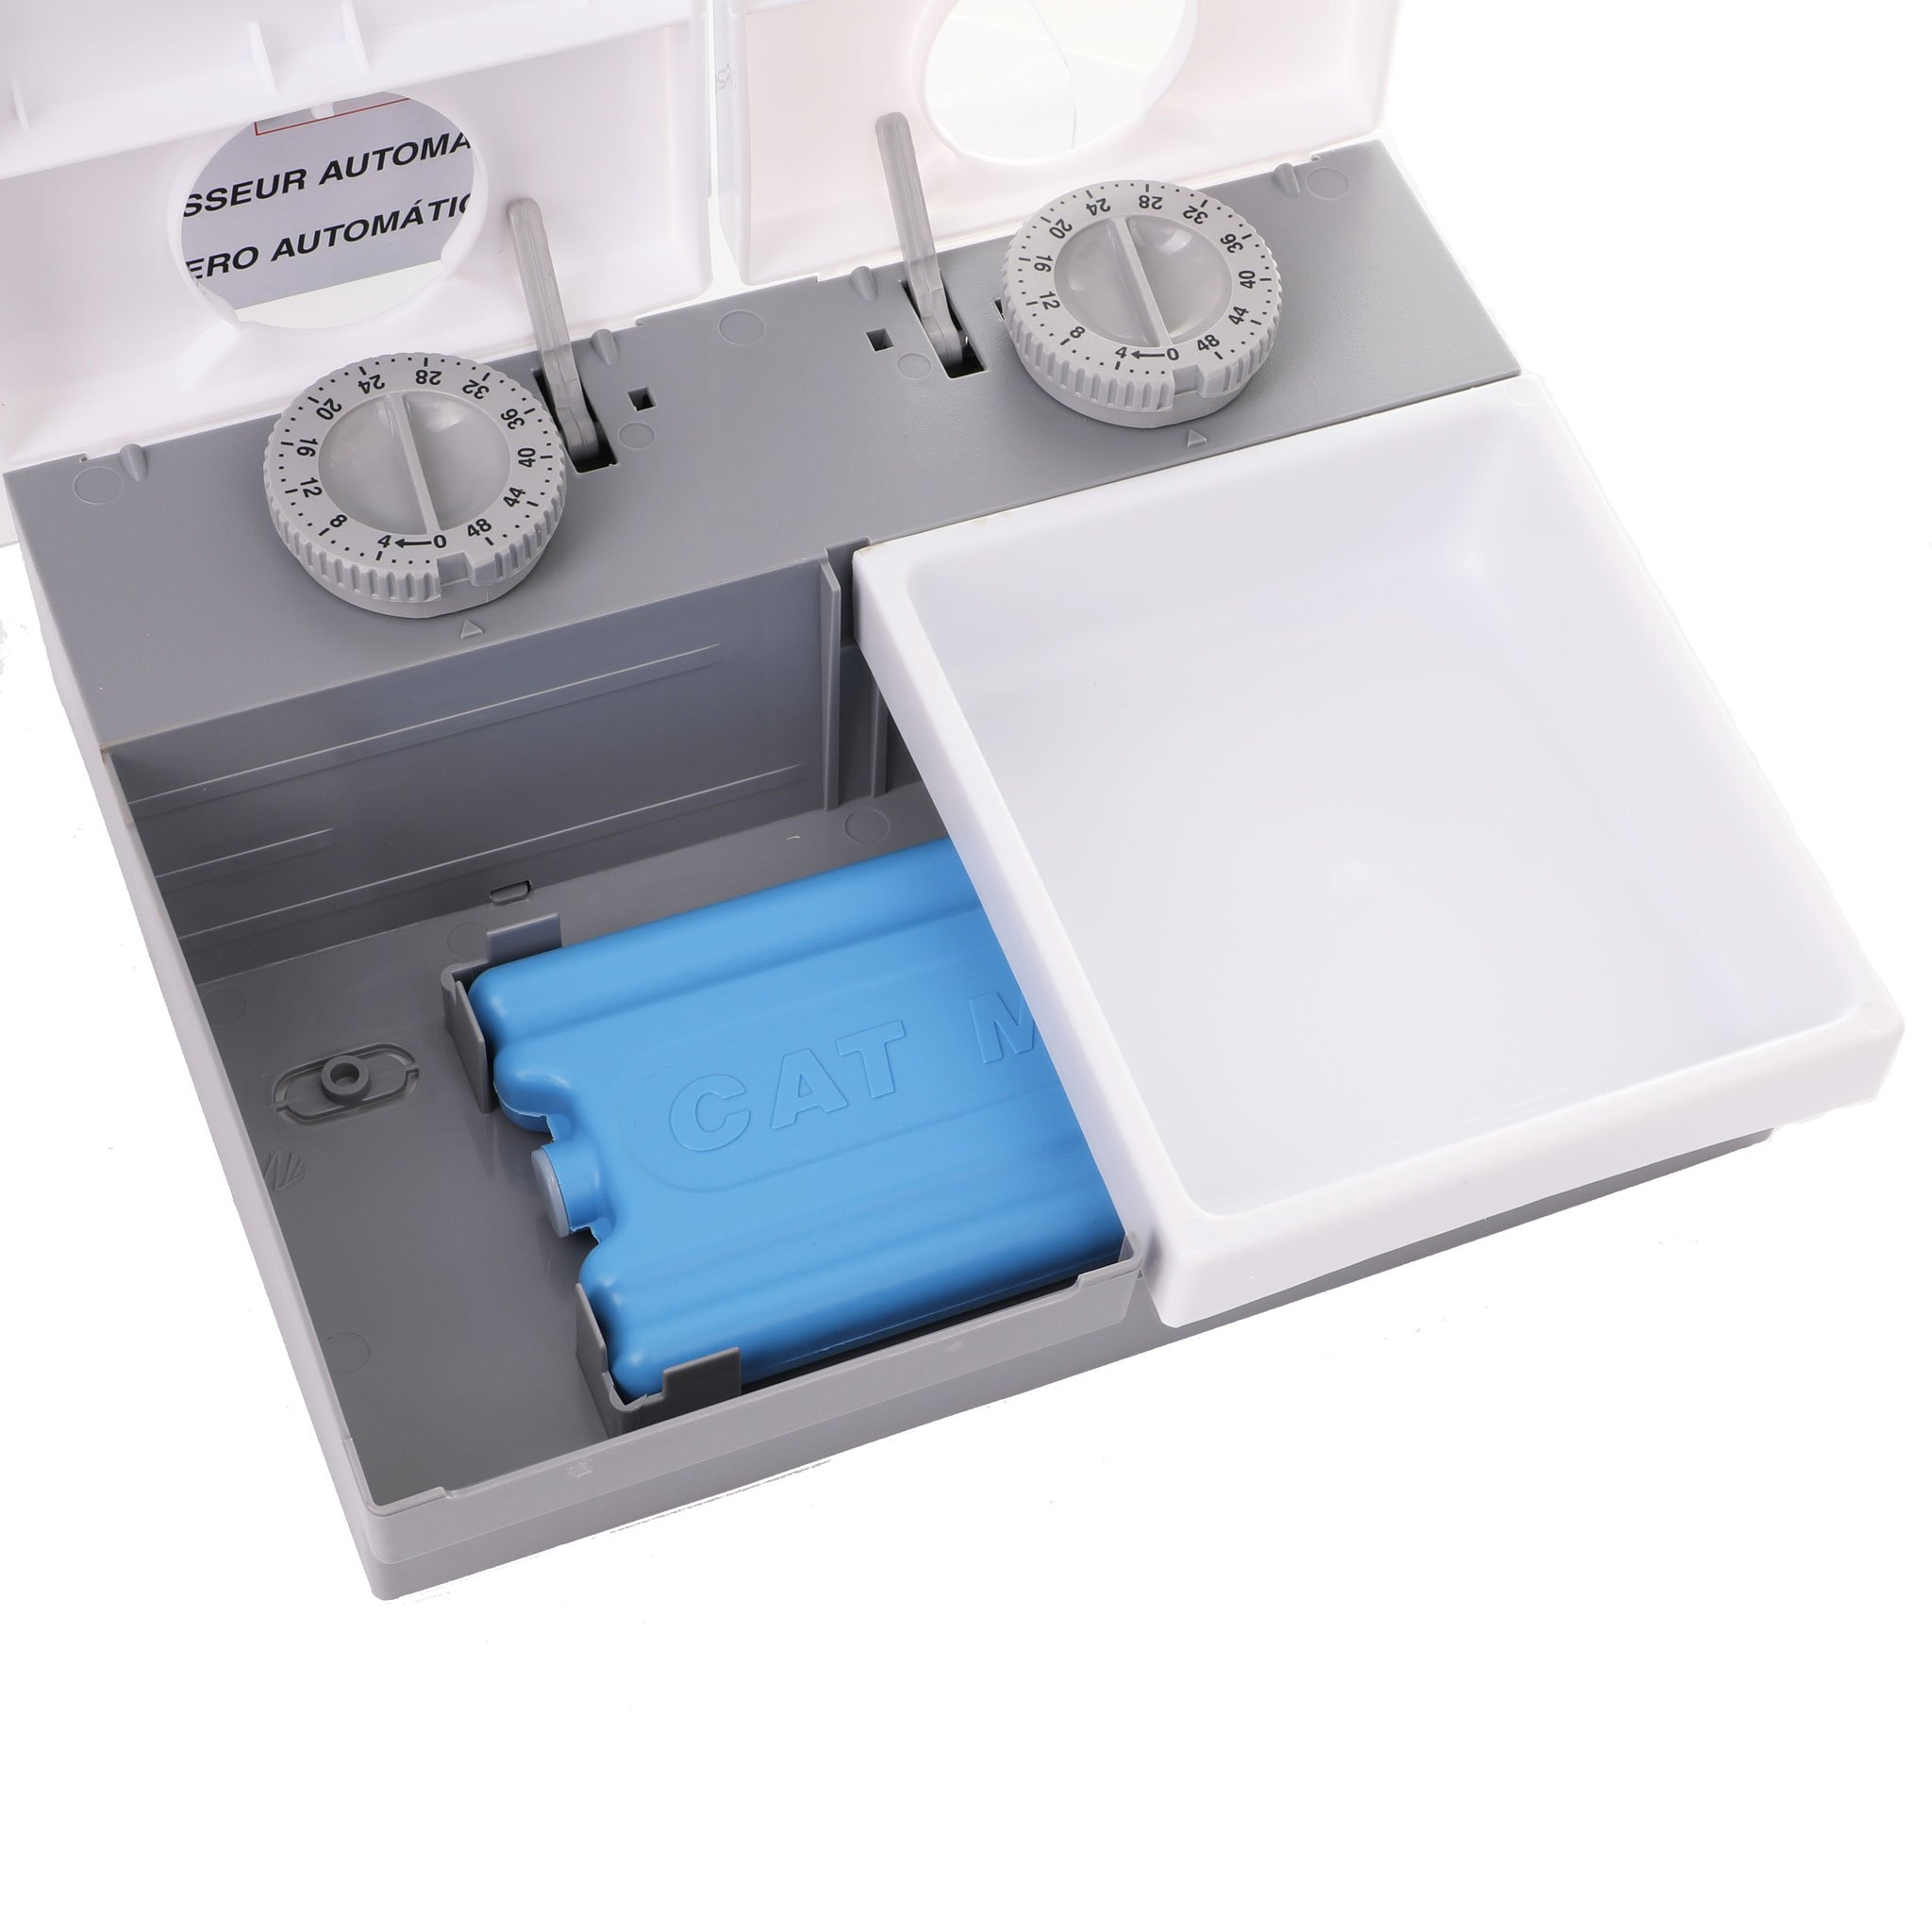 Ice pack below the feeding trays to keep food fresh and cool.